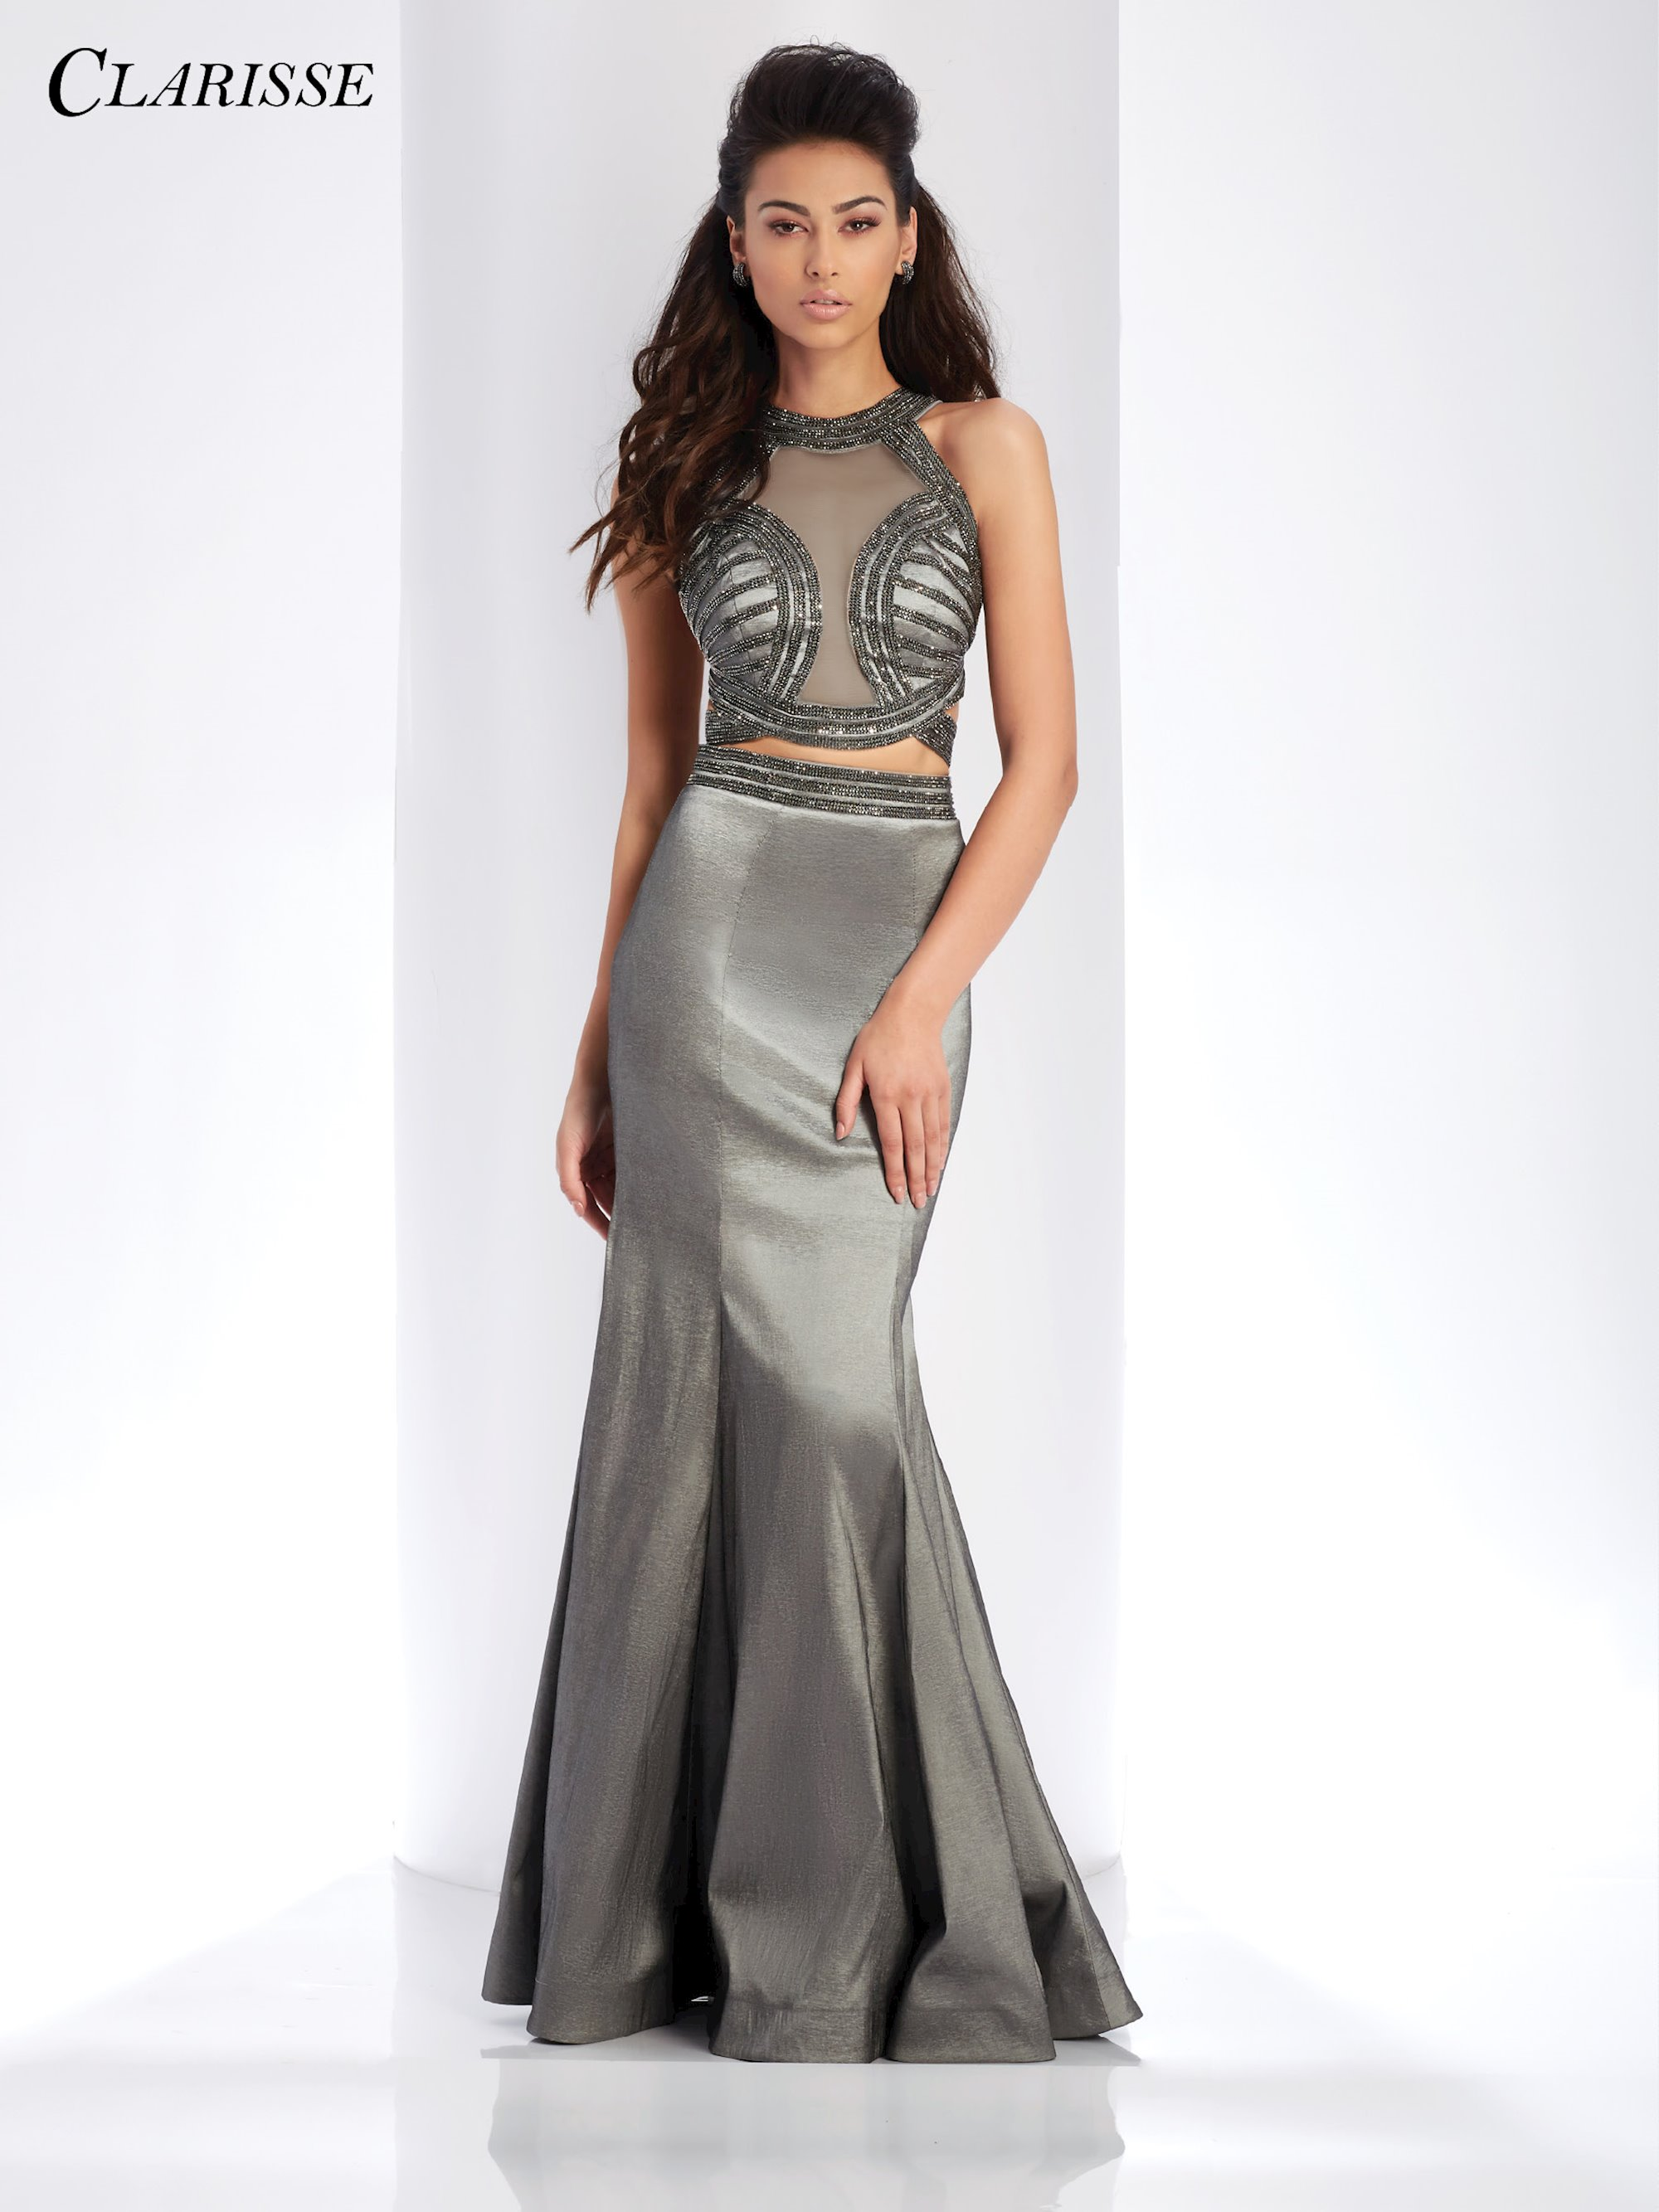 Clarisse Prom 2018 Dresses | Synchronicity Boutique in Baltimore, MD ...